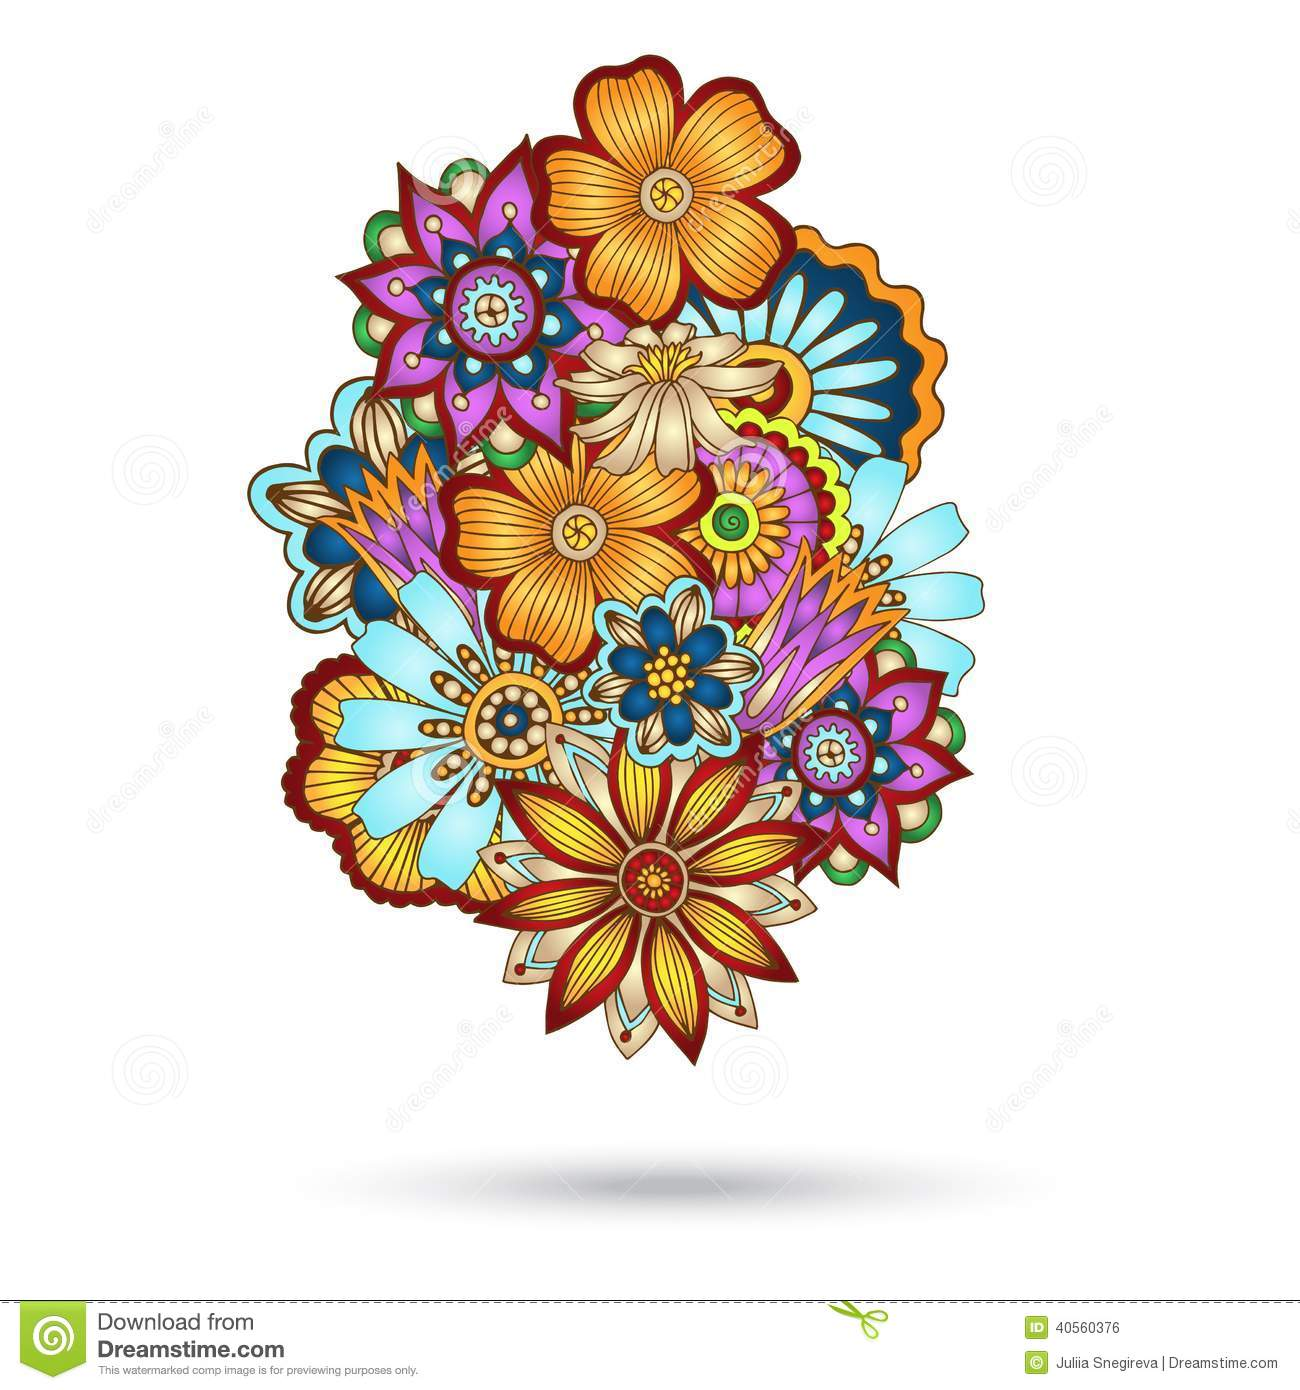 Colored flower doodles henna paisley floral vector design element